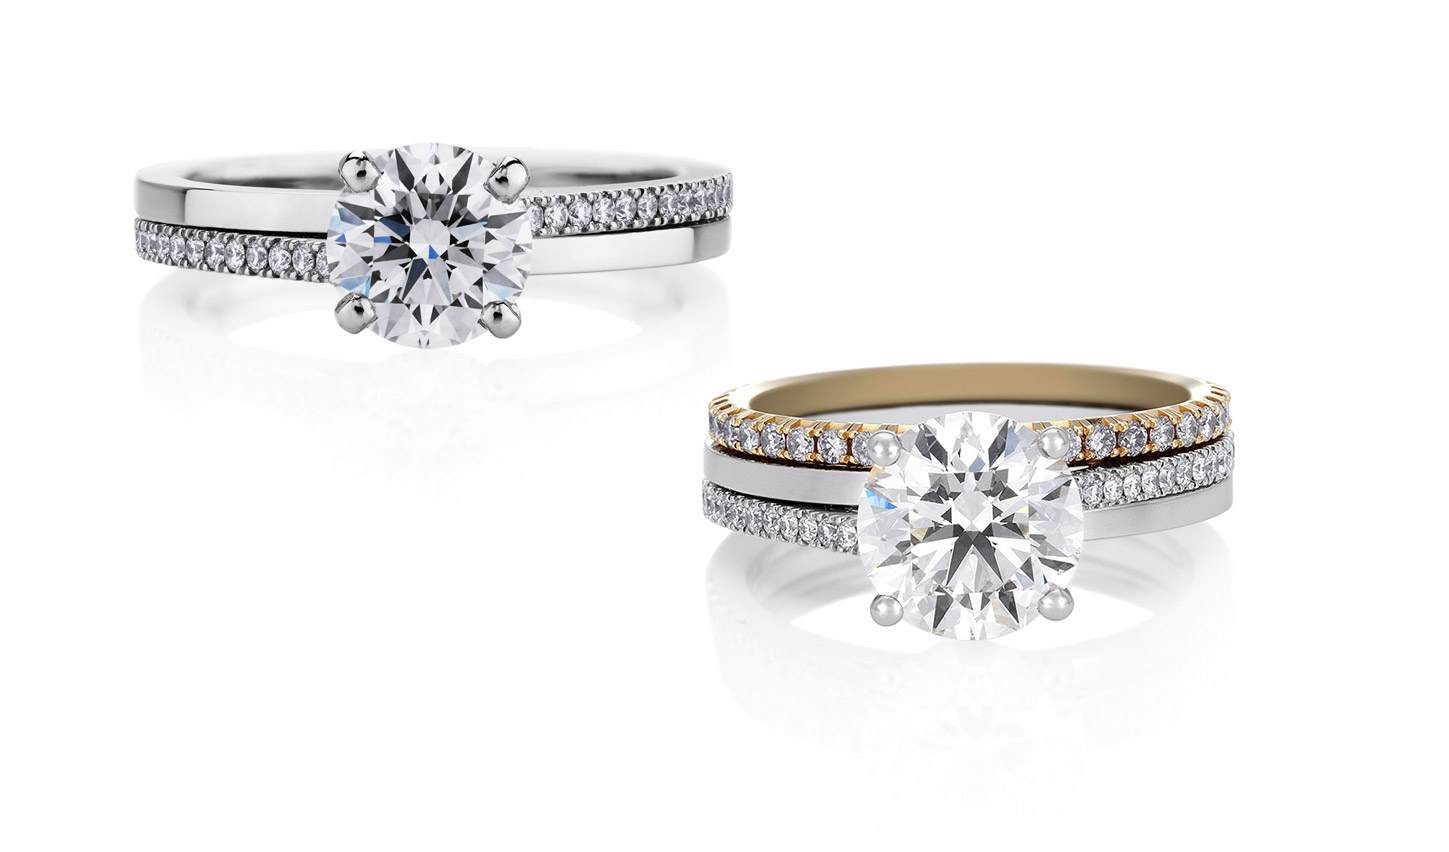 De Beers 'Promise' diamond engagement rings in white and yellow gold